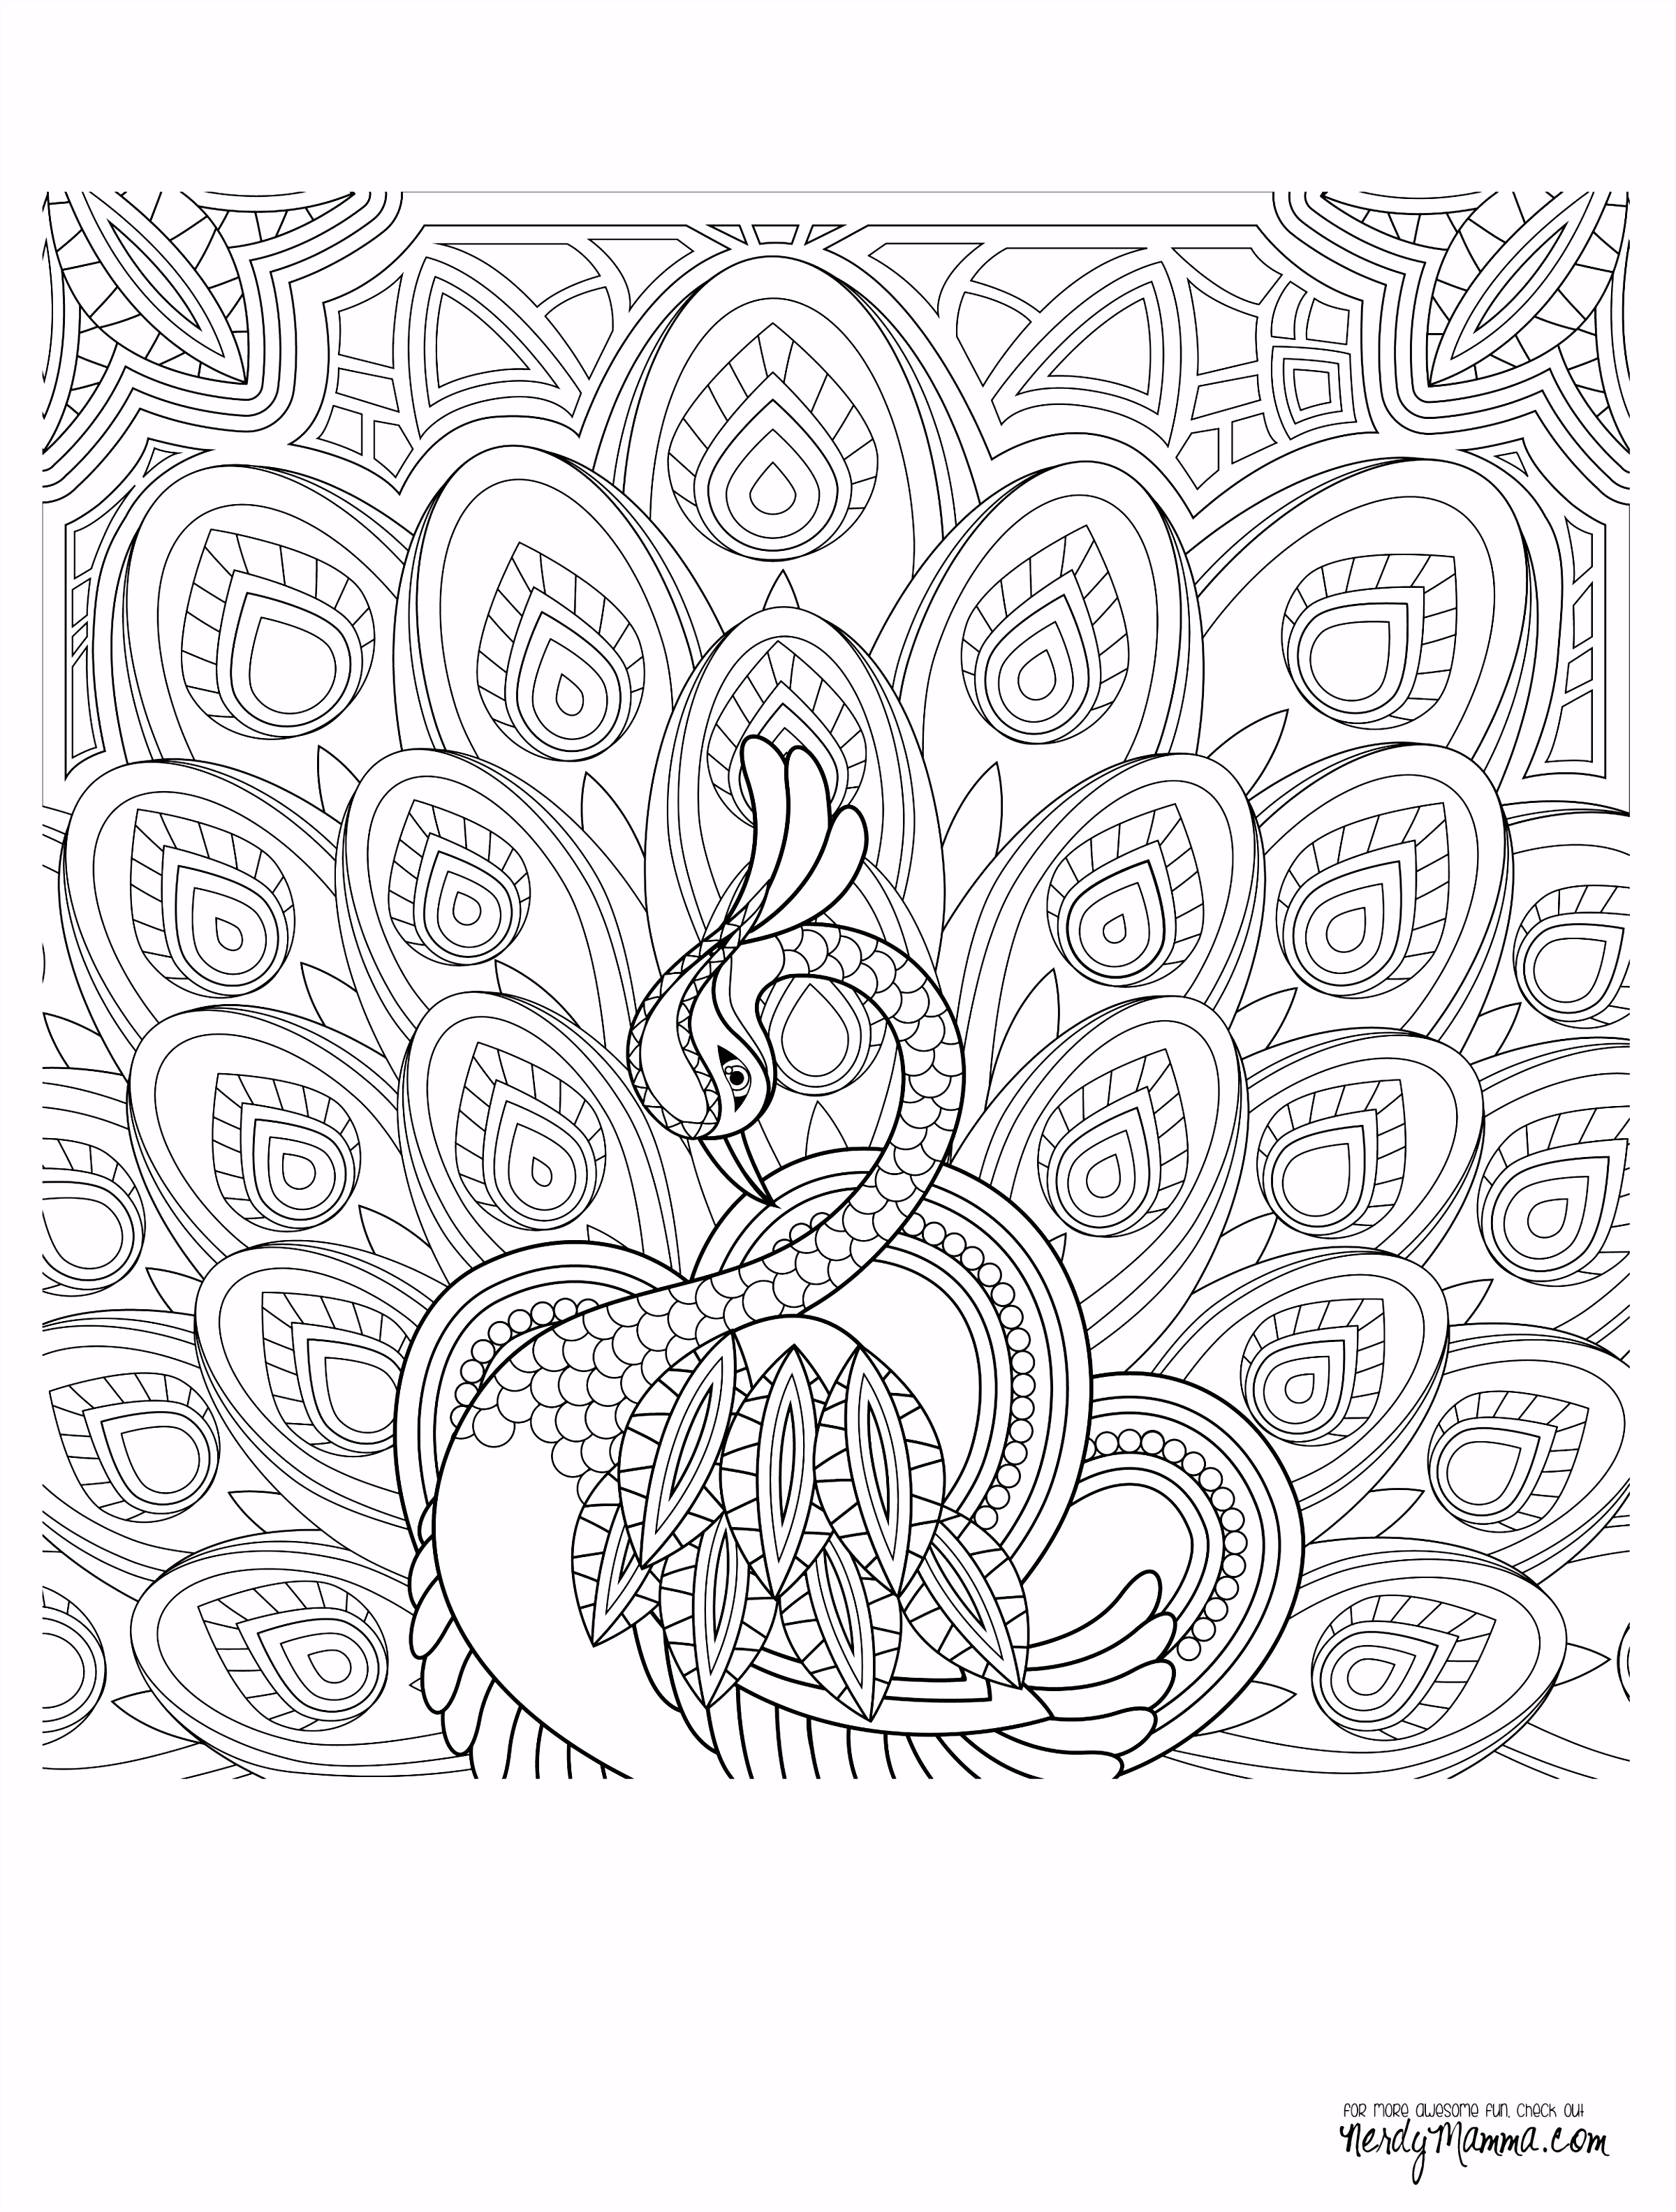 Peacock Feather Coloring pages colouring adult detailed advanced